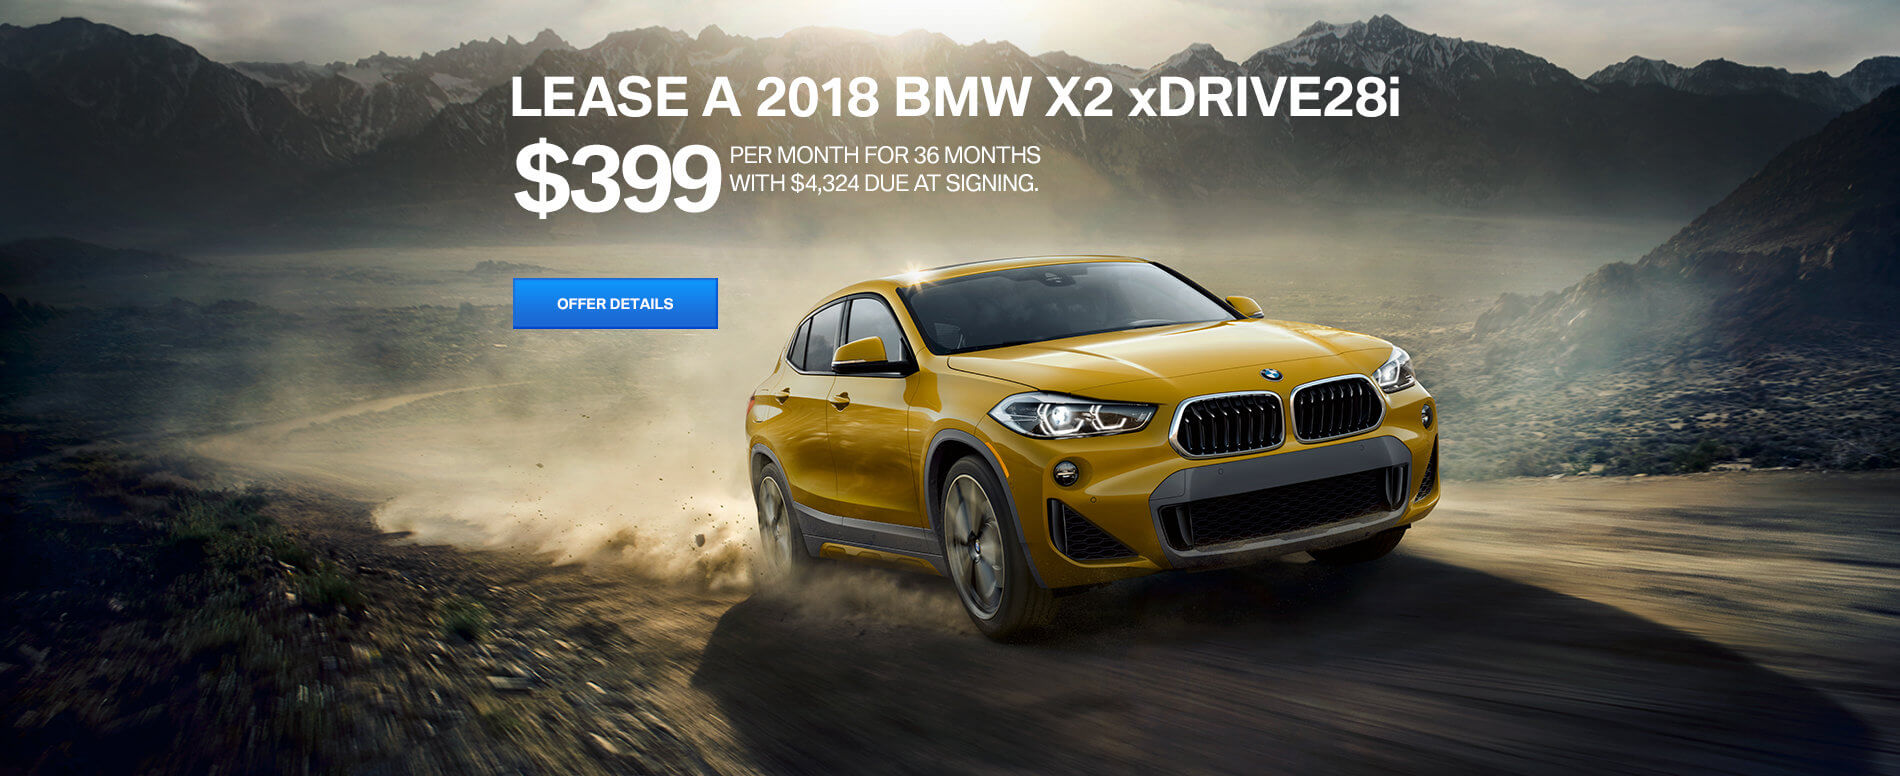 LEASE A 2018 X2 xDRIVE28i FOR $399/MO FOR 36 MONTHS WITH $4,324